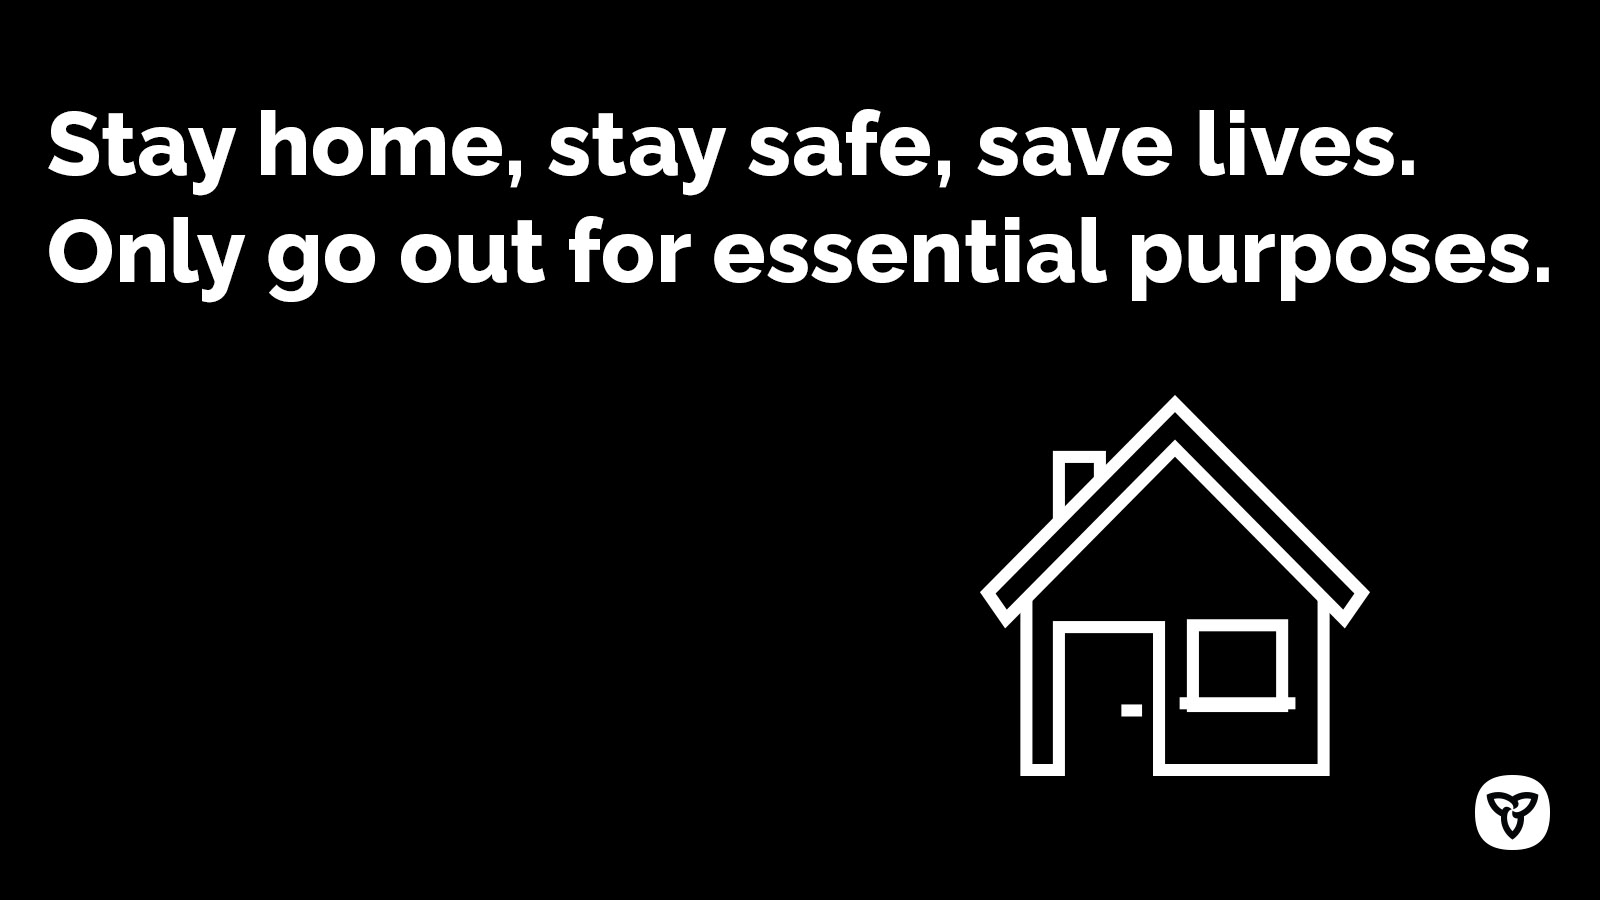 Image Text : Stay home, stay safe, save lives. Only go out for essential purposes.